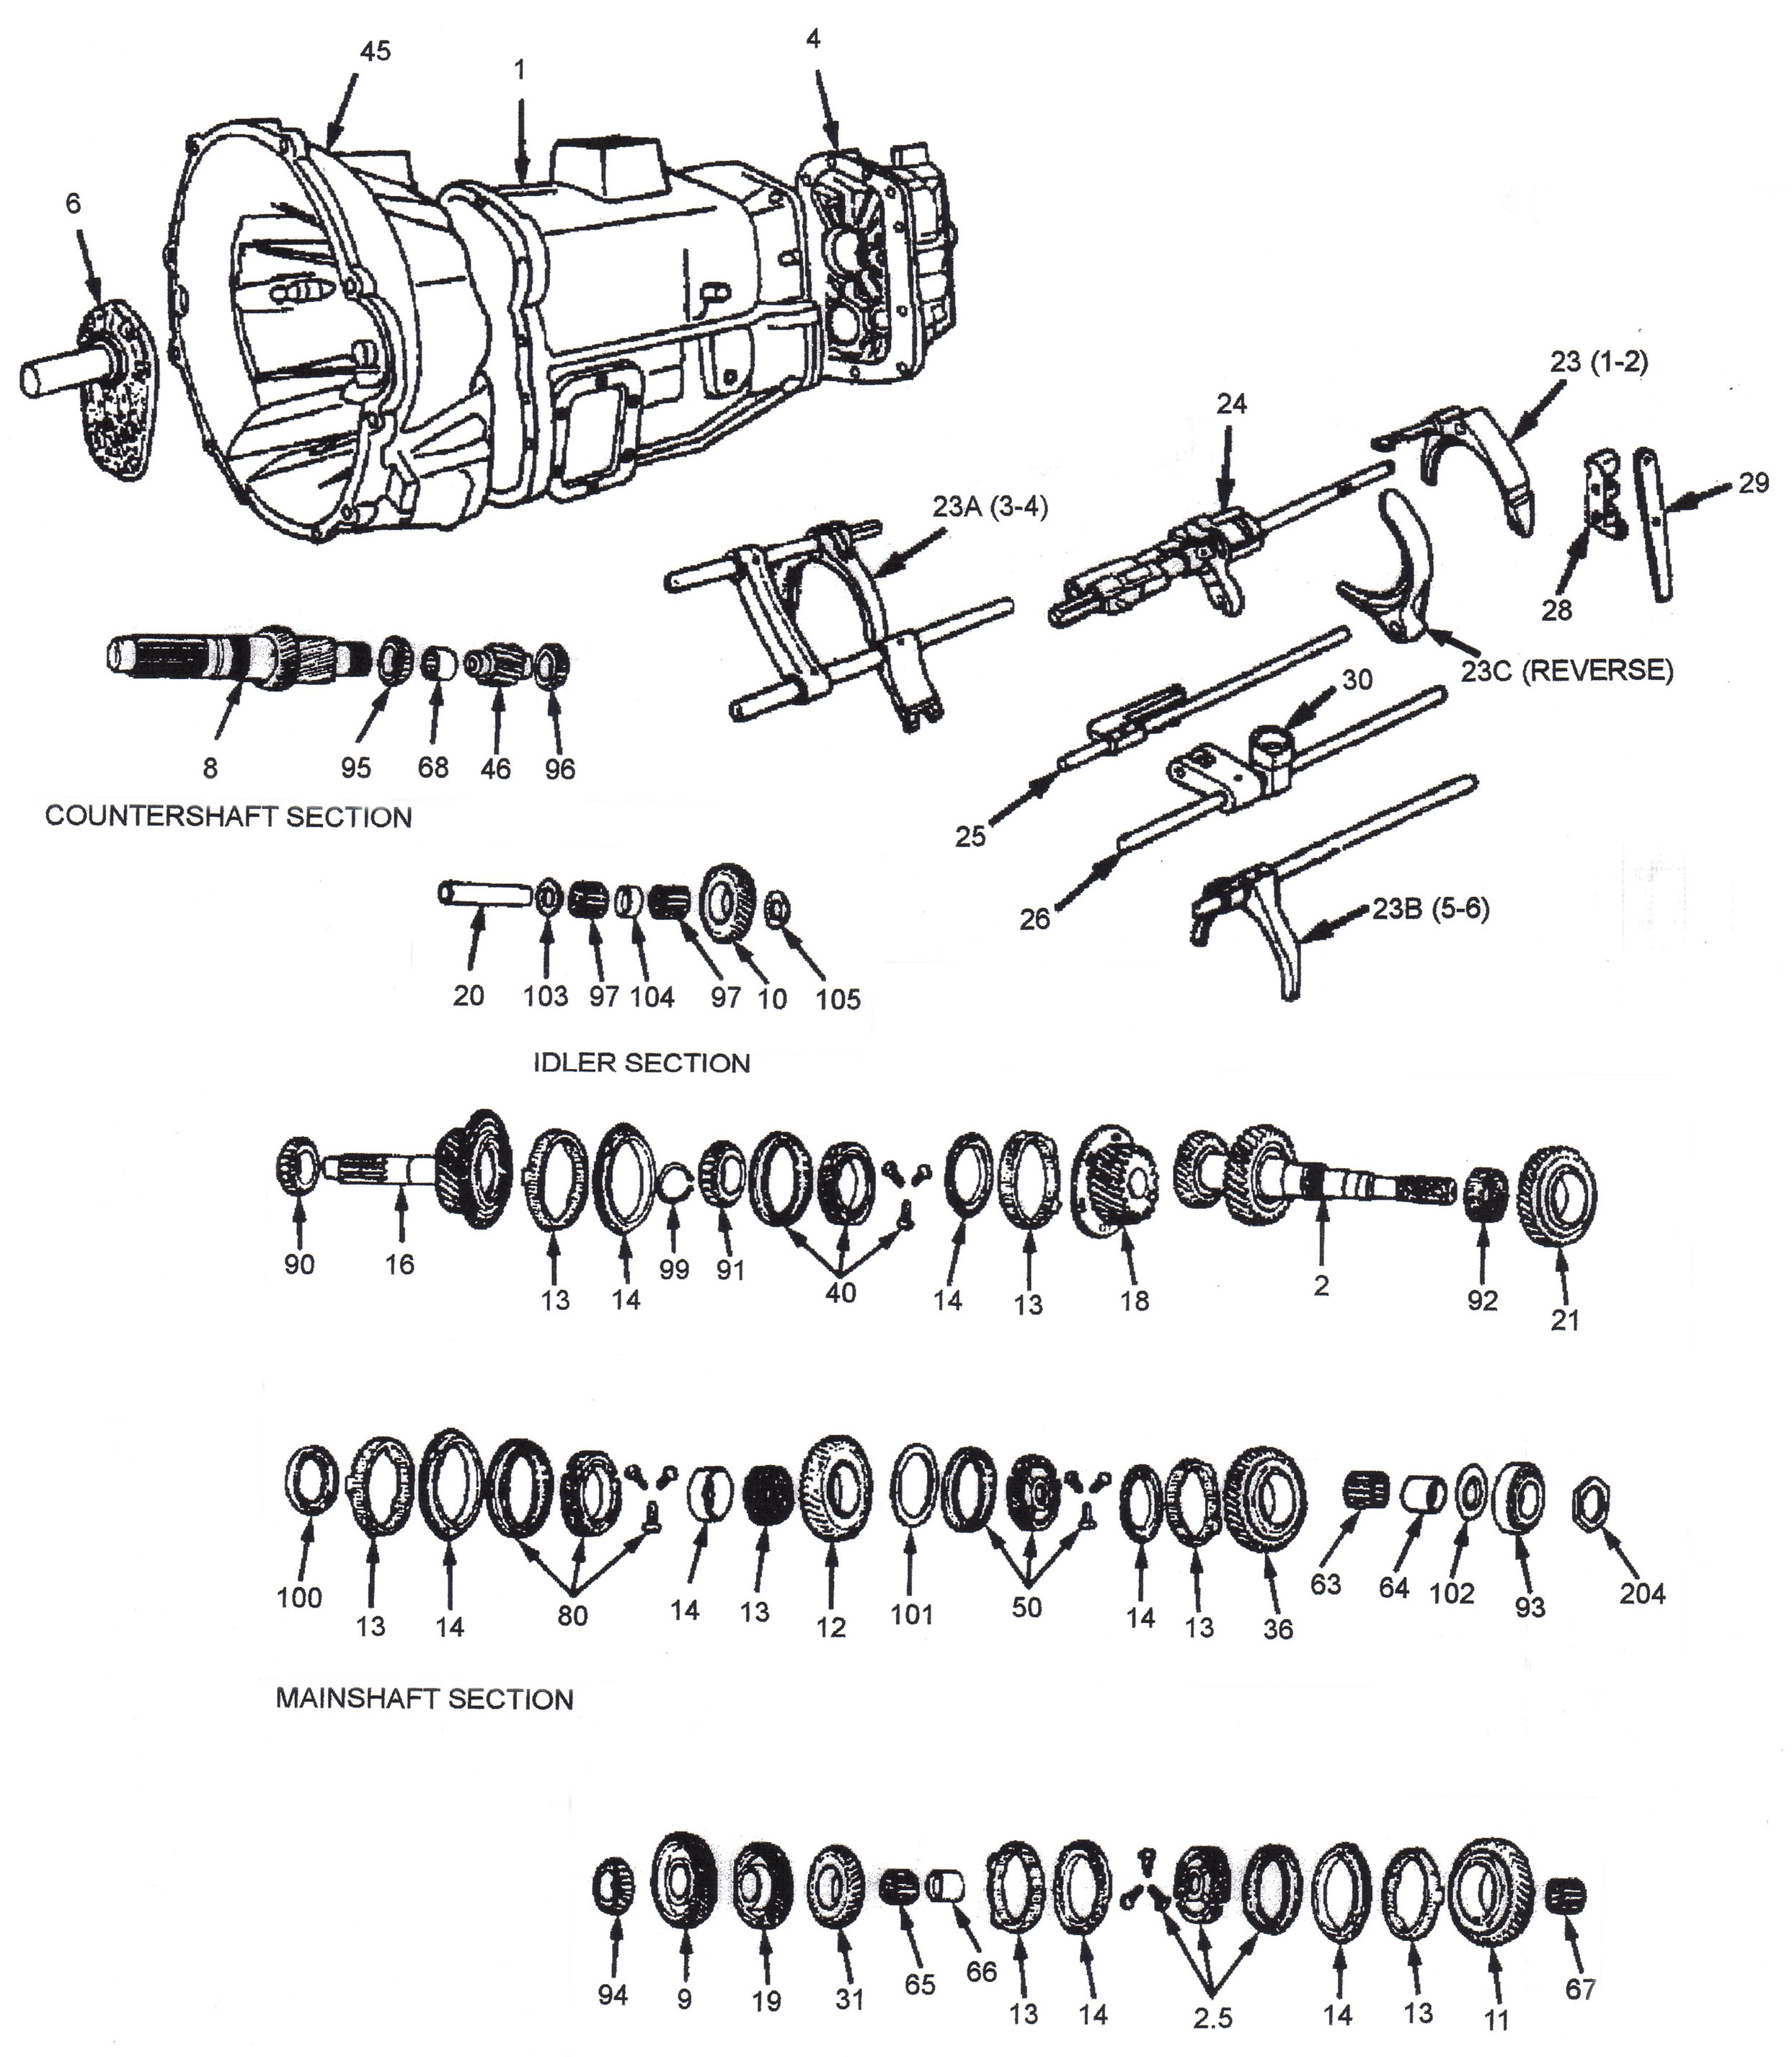 Daihatsu Transmission Diagrams Circuit Diagram Symbols Fuse Gm Box 15940497 Nv5600 Dodge Six Speed Manual Rebuild Kits Rh Drivetrain Com Allison Simple